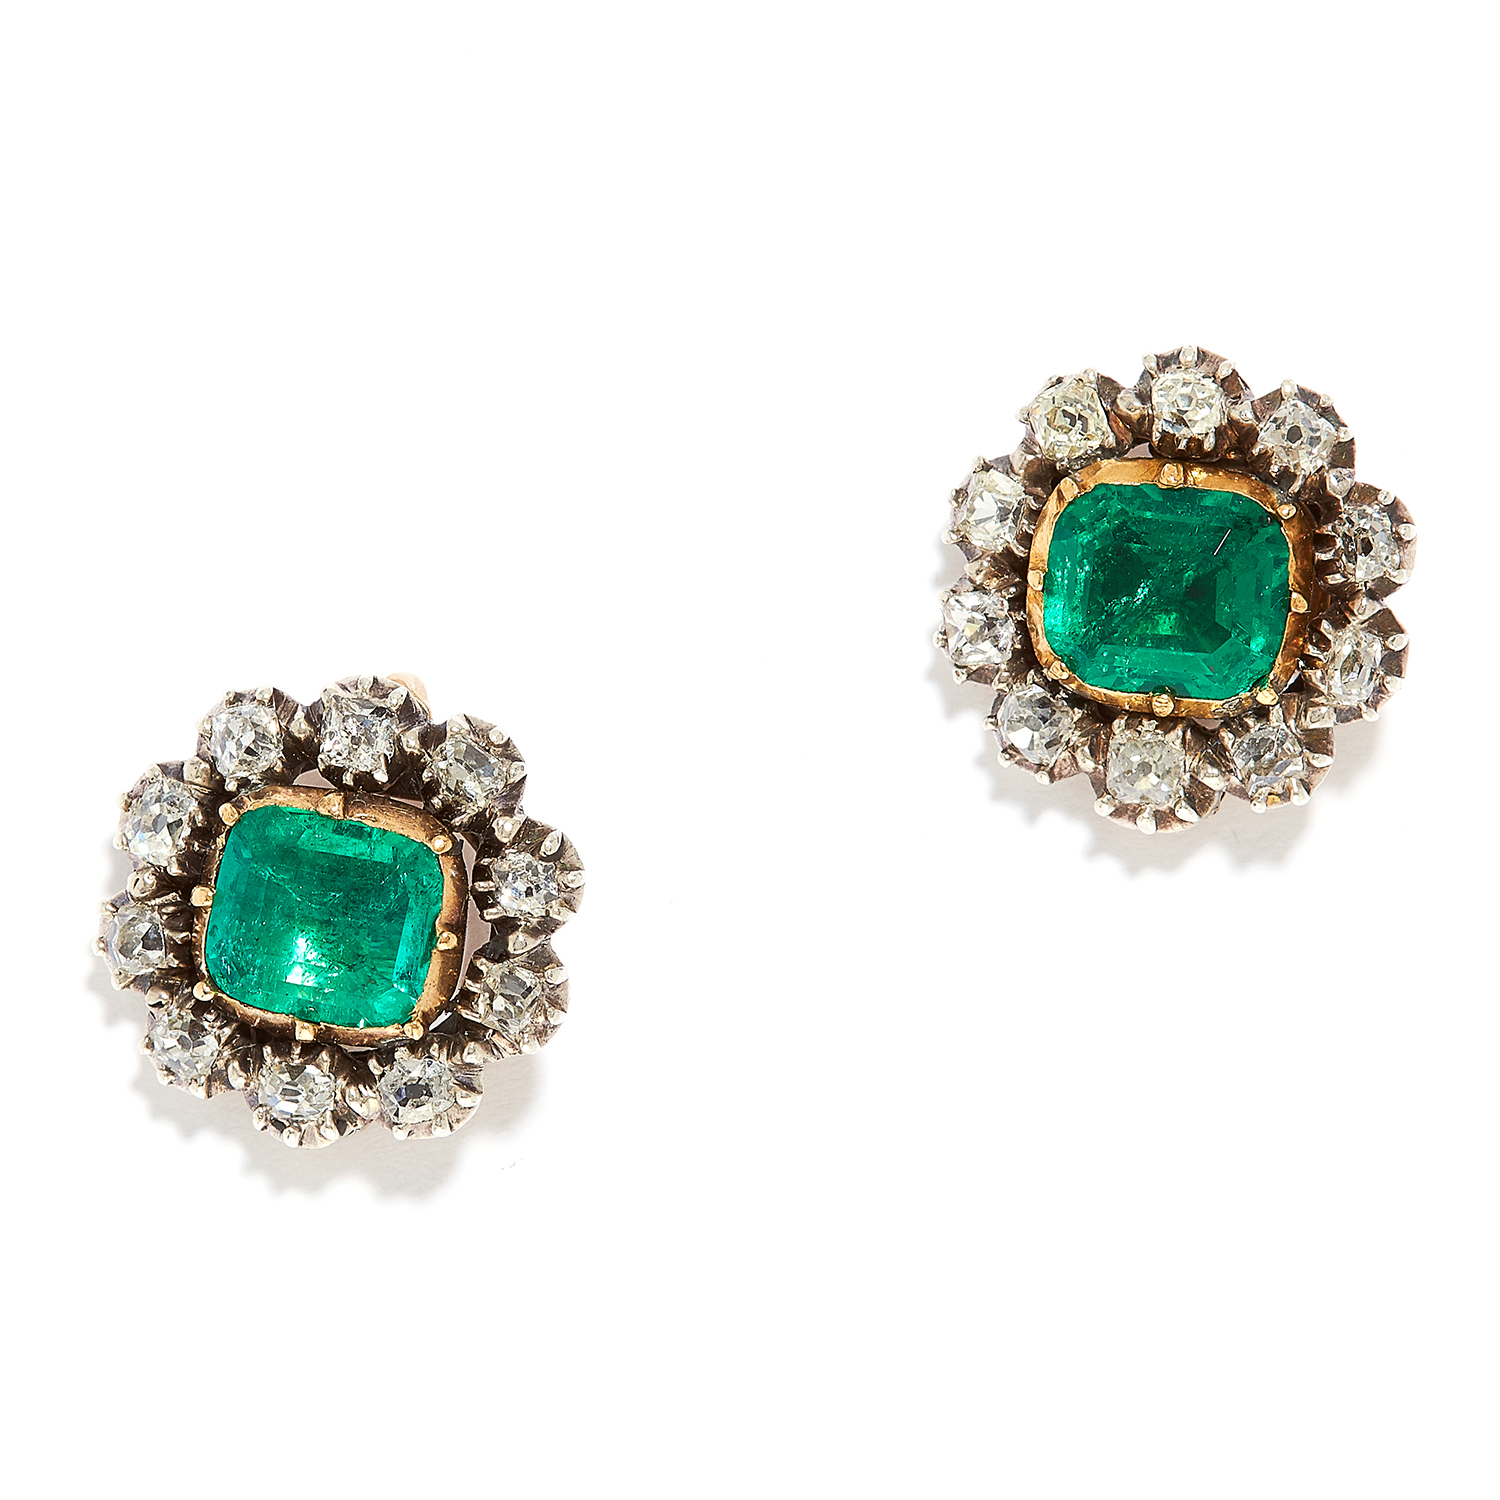 ANTIQUE EMERALD AND DIAMOND CLUSTER EARRINGS in 18ct yellow gold, each set with an emerald cut